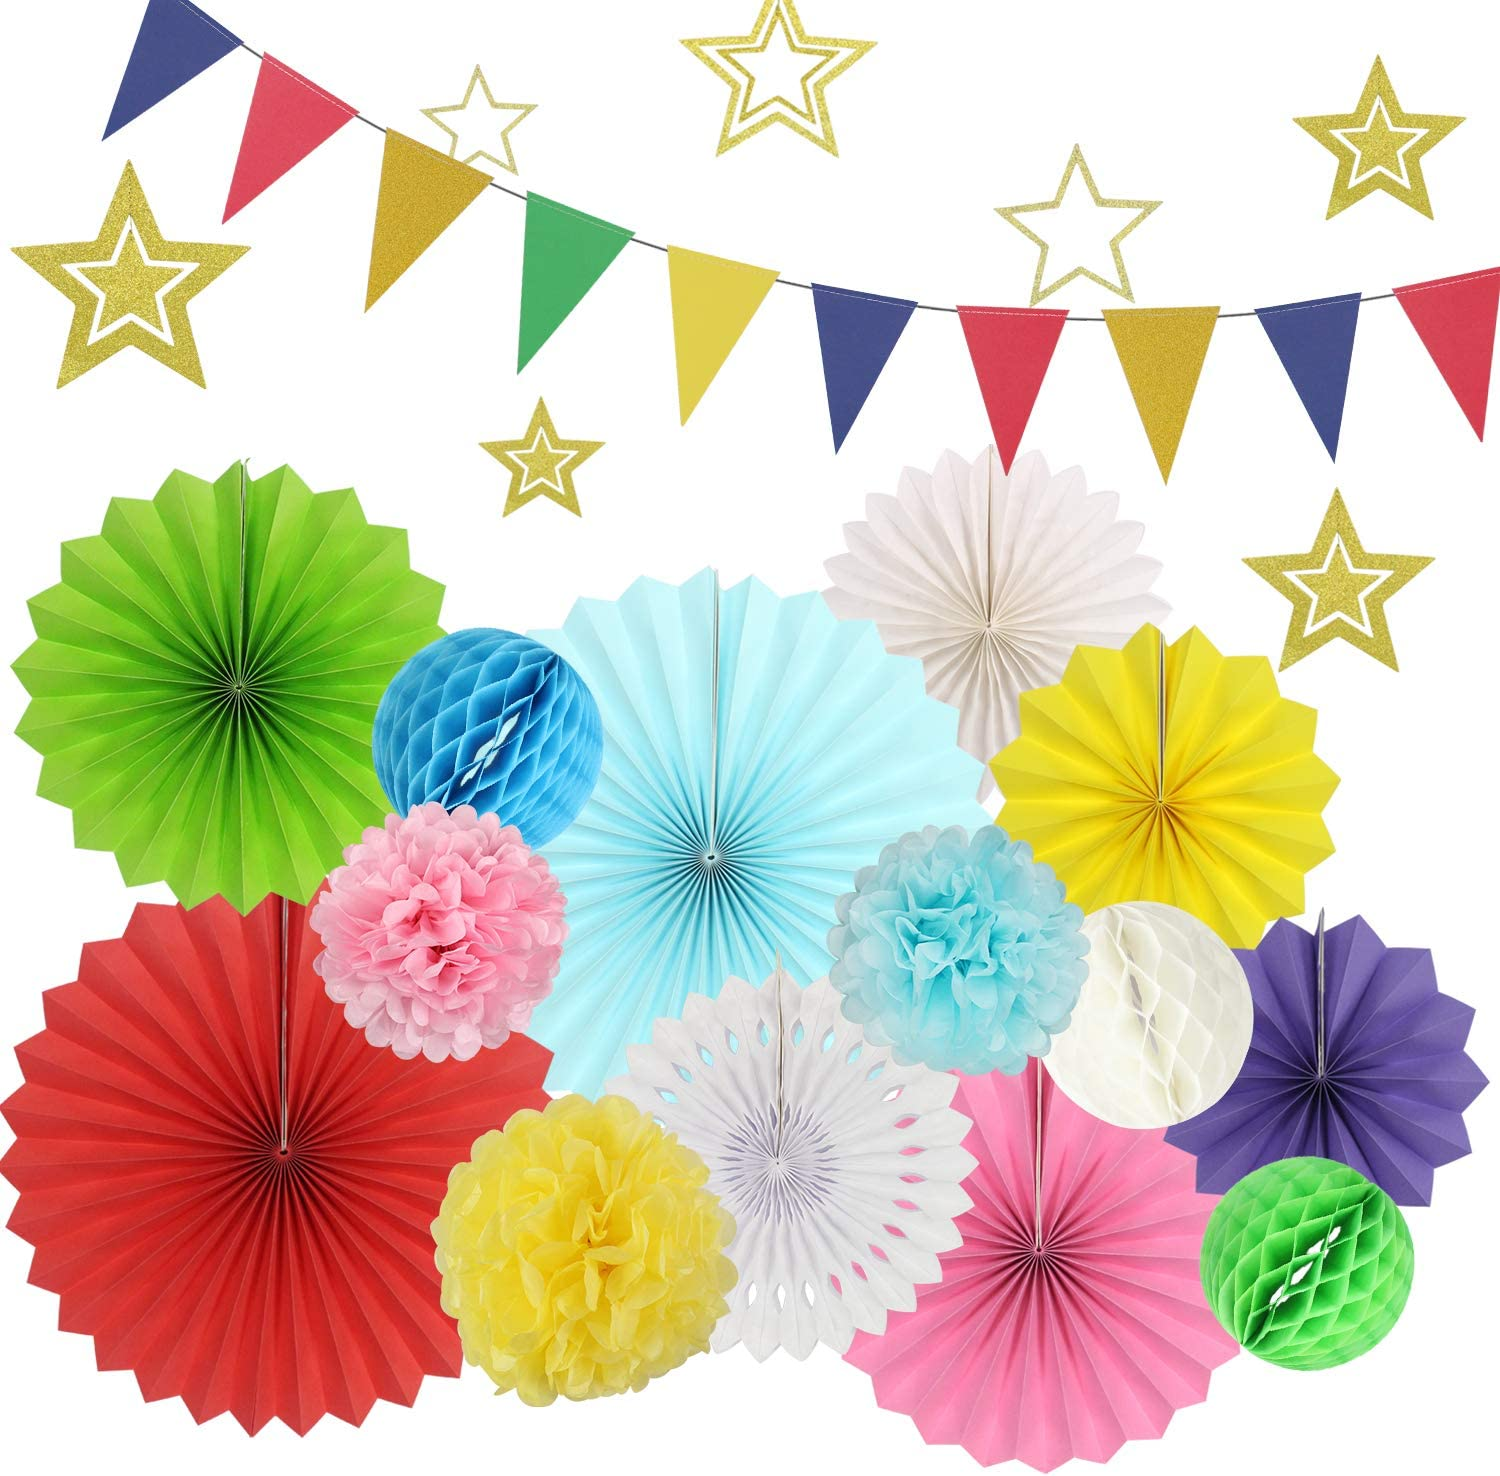 Party Decoration Set 22Pcs Multicolor Hanging Paper Fans Pom Poms Flowers Honeycomb Ball Gold Star and Triangle Bunting Flags for Fiesta Mexican Cinco De Mayo Baby Shower Birthday Wedding Decor